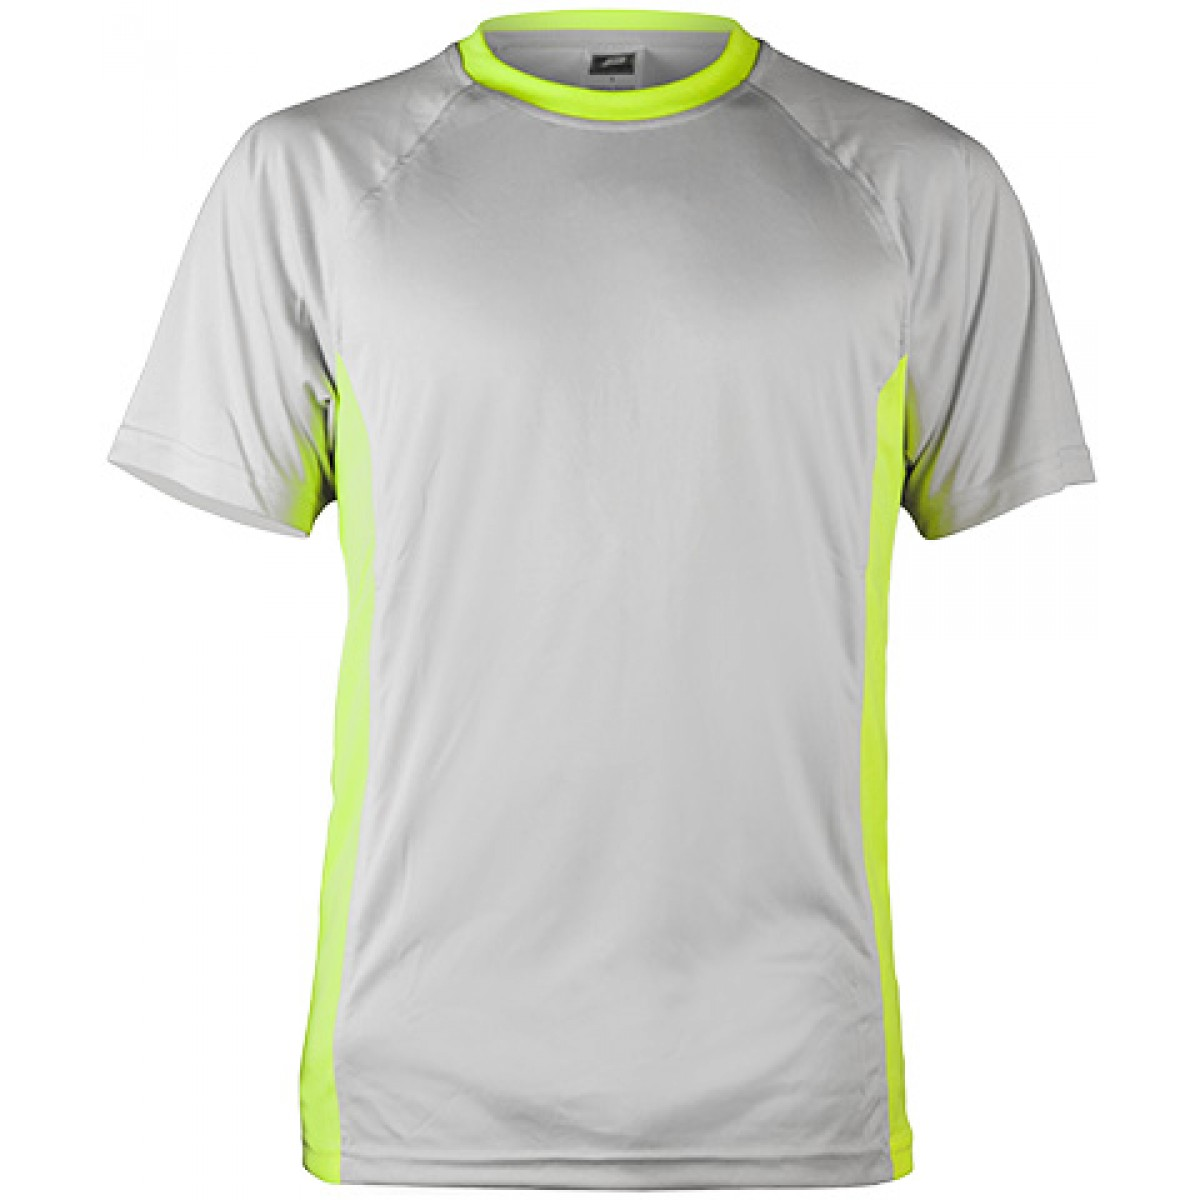 Short Sleeve Performance Fit with Flat-back Mesh Side Insert-Gray/Green-YL